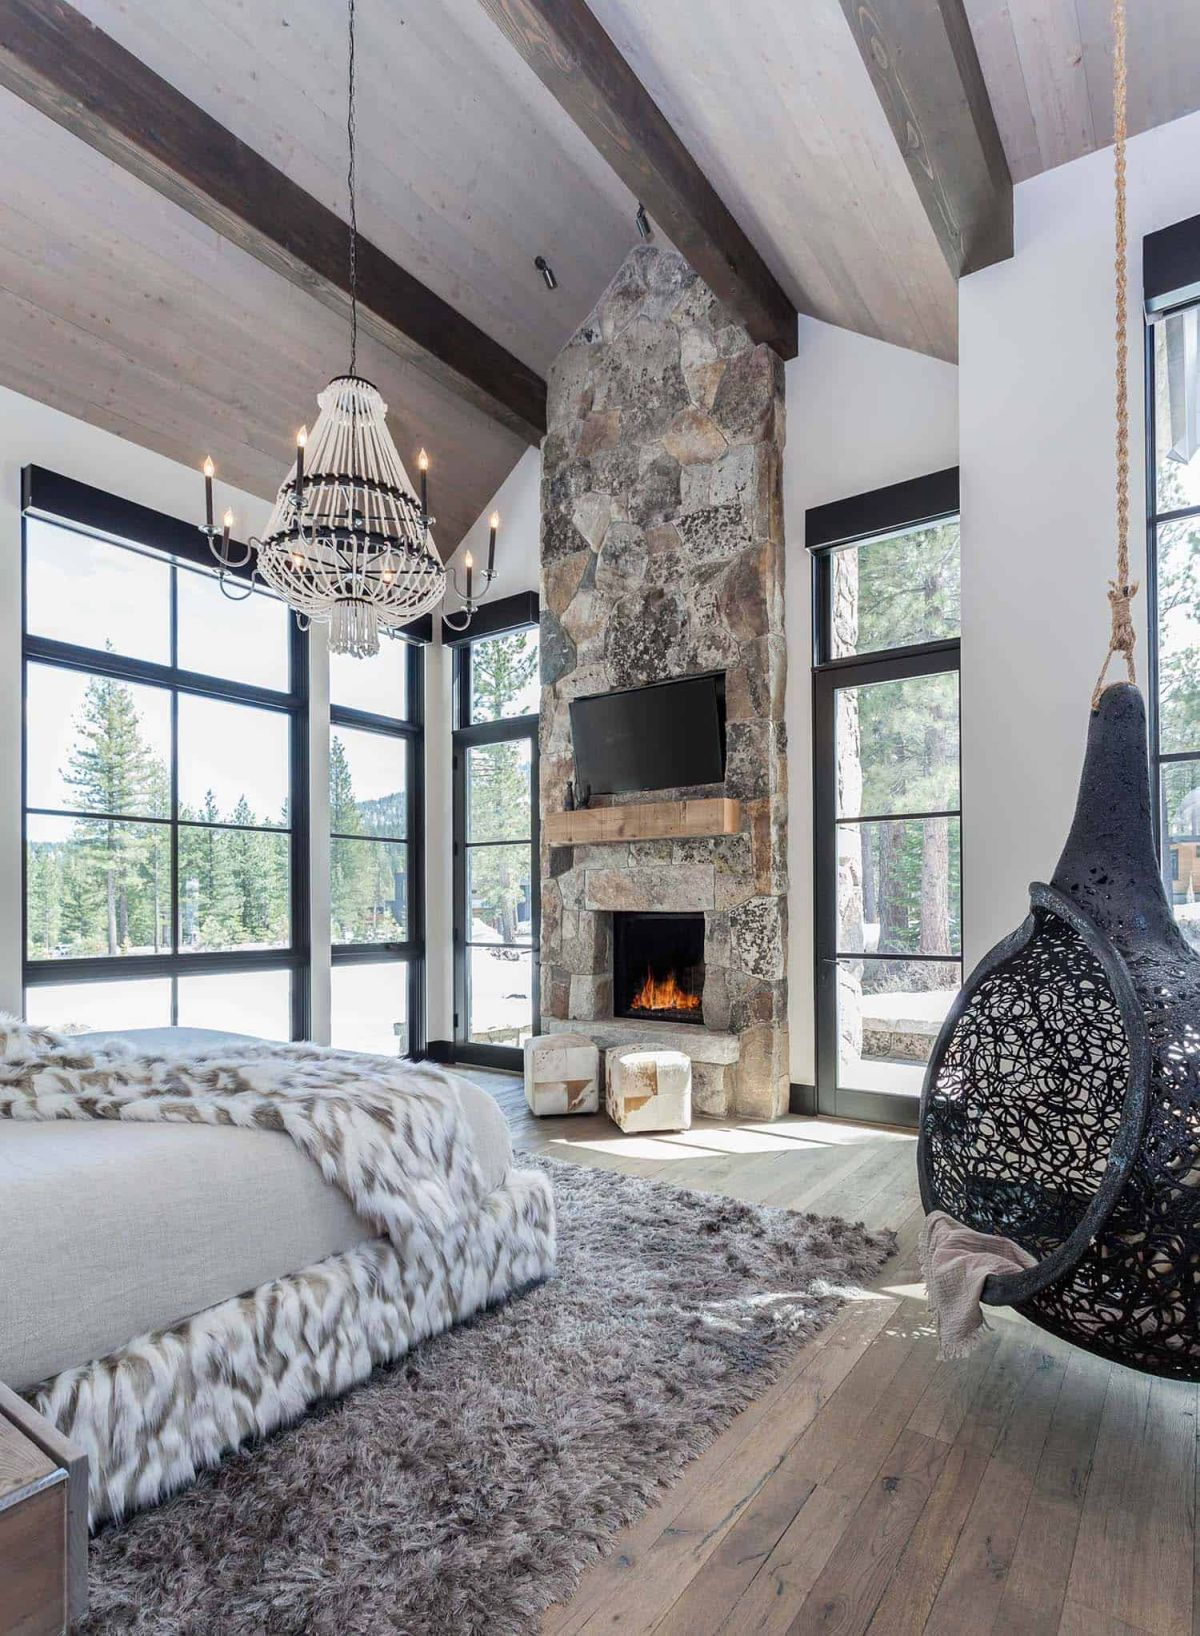 1560338048 173 cozy mountain retreat welcomes nature inside its charming rooms - Cozy Mountain Retreat Welcomes Nature Inside Its Charming Rooms